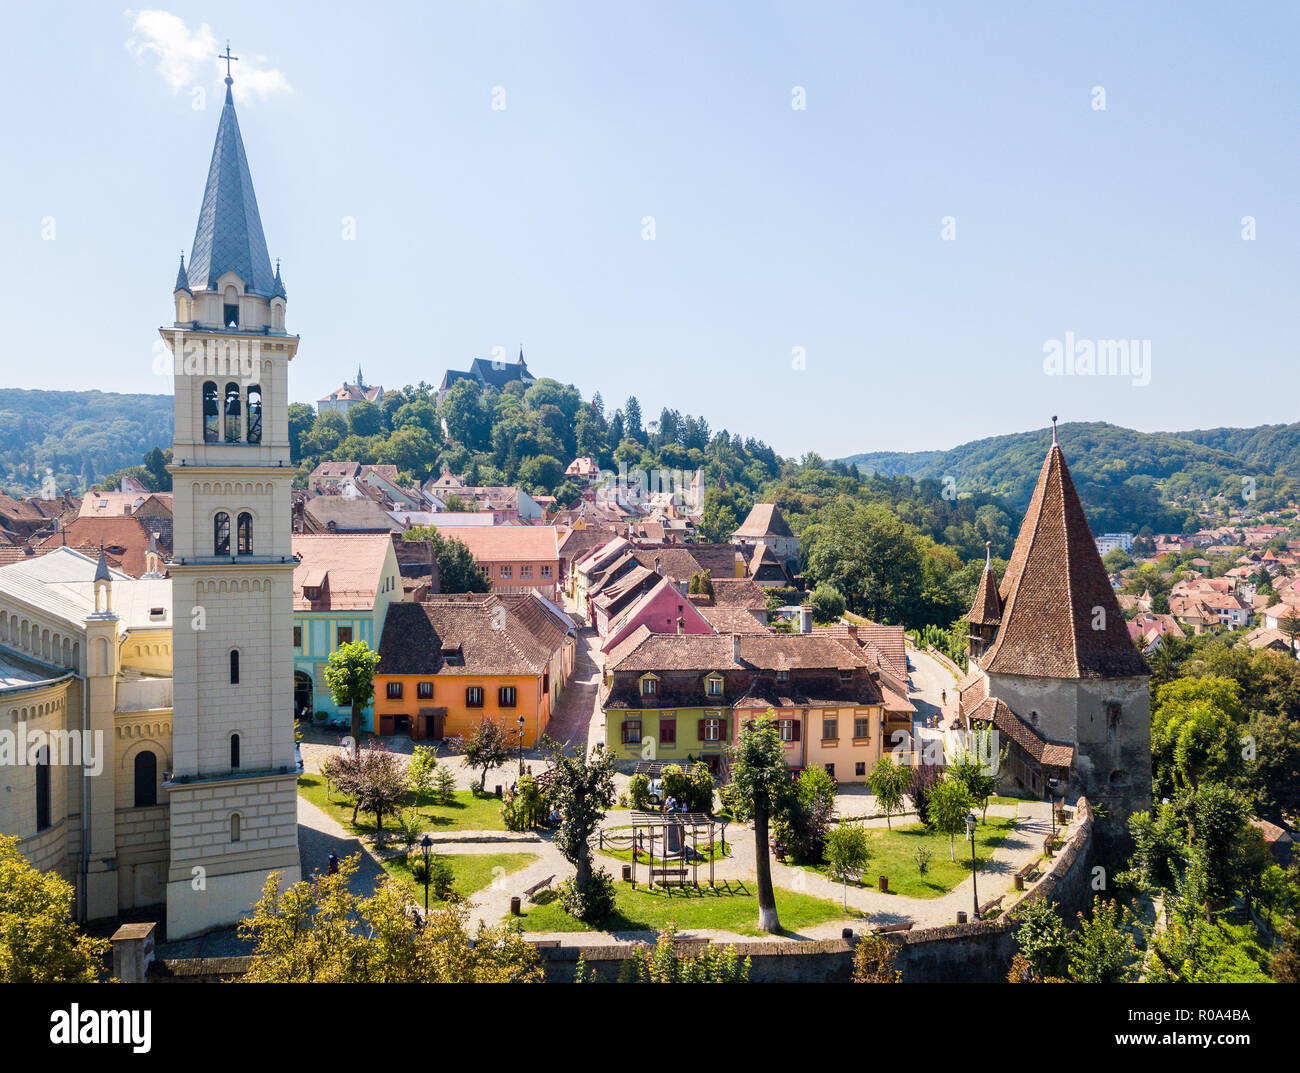 Spires and red tiled roofs of Walled old town of Sighisoara, Transylvania, Romania. Bell tower of St. Joseph's Cathedral and Bootmakers' Tower - Stock Image